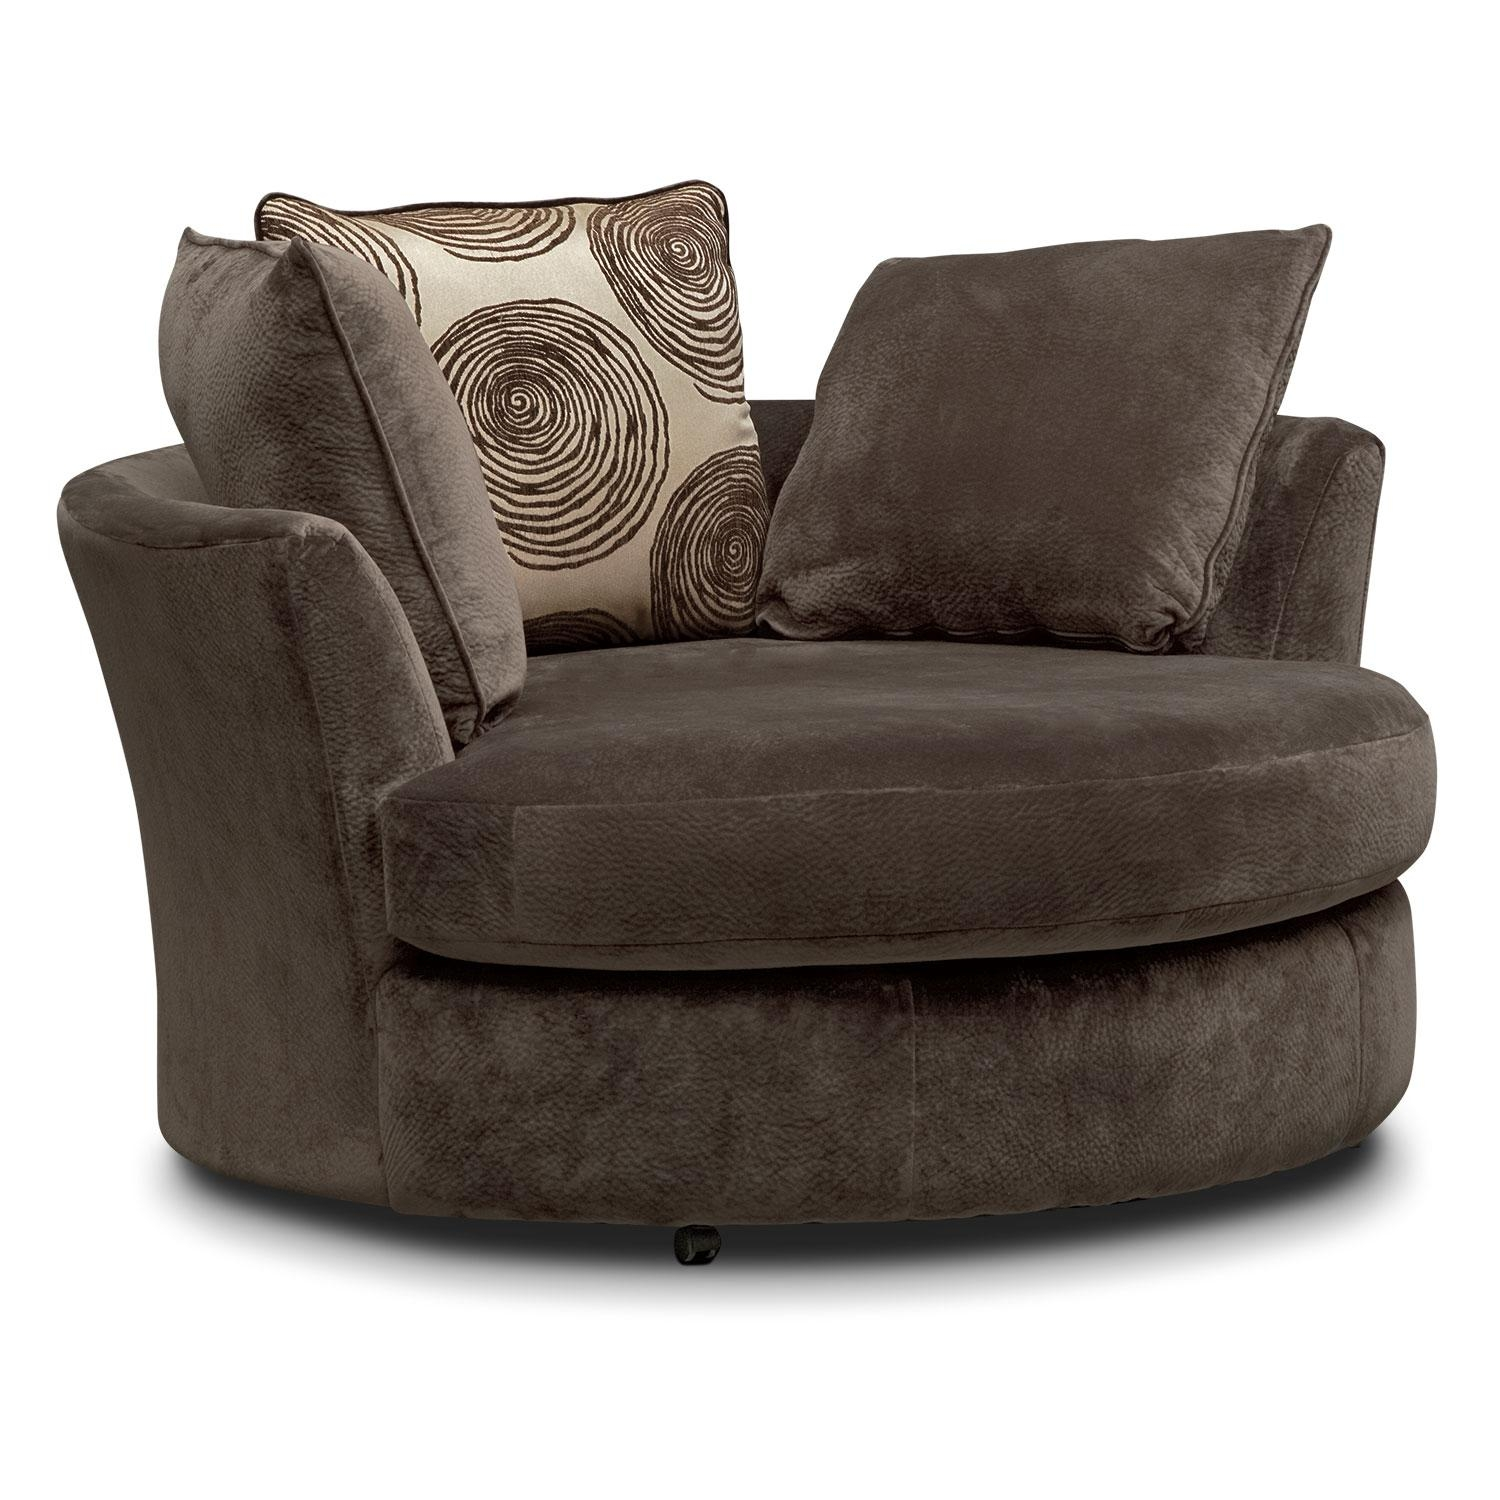 Cordelle Swivel Chair – Chocolate | Value City Furniture For Spinning Sofa Chairs (View 3 of 20)